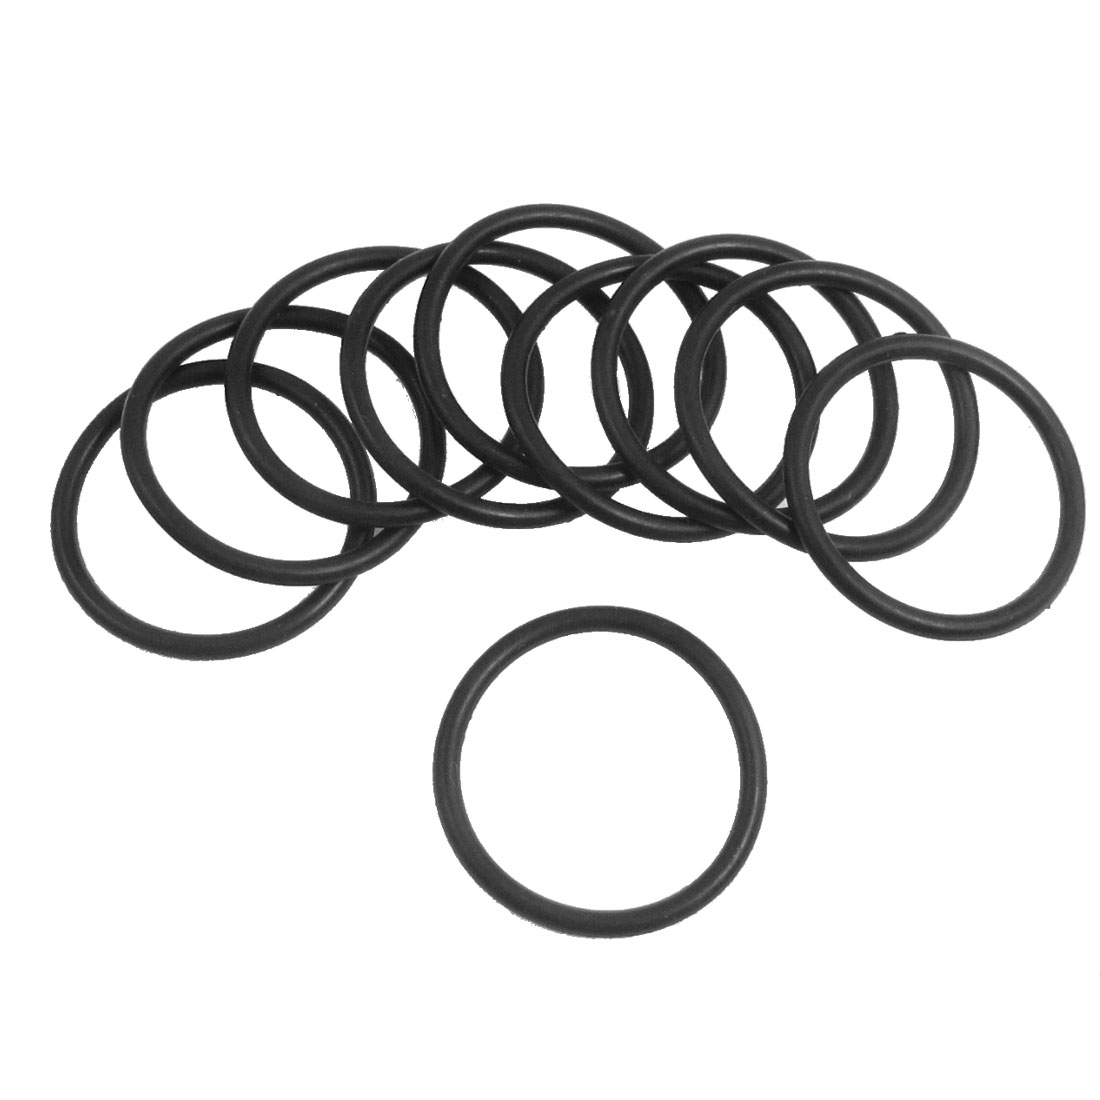 10 Pcs 28mm x 2.65mm Black Silicone O Rings Oil Seals Gaskets